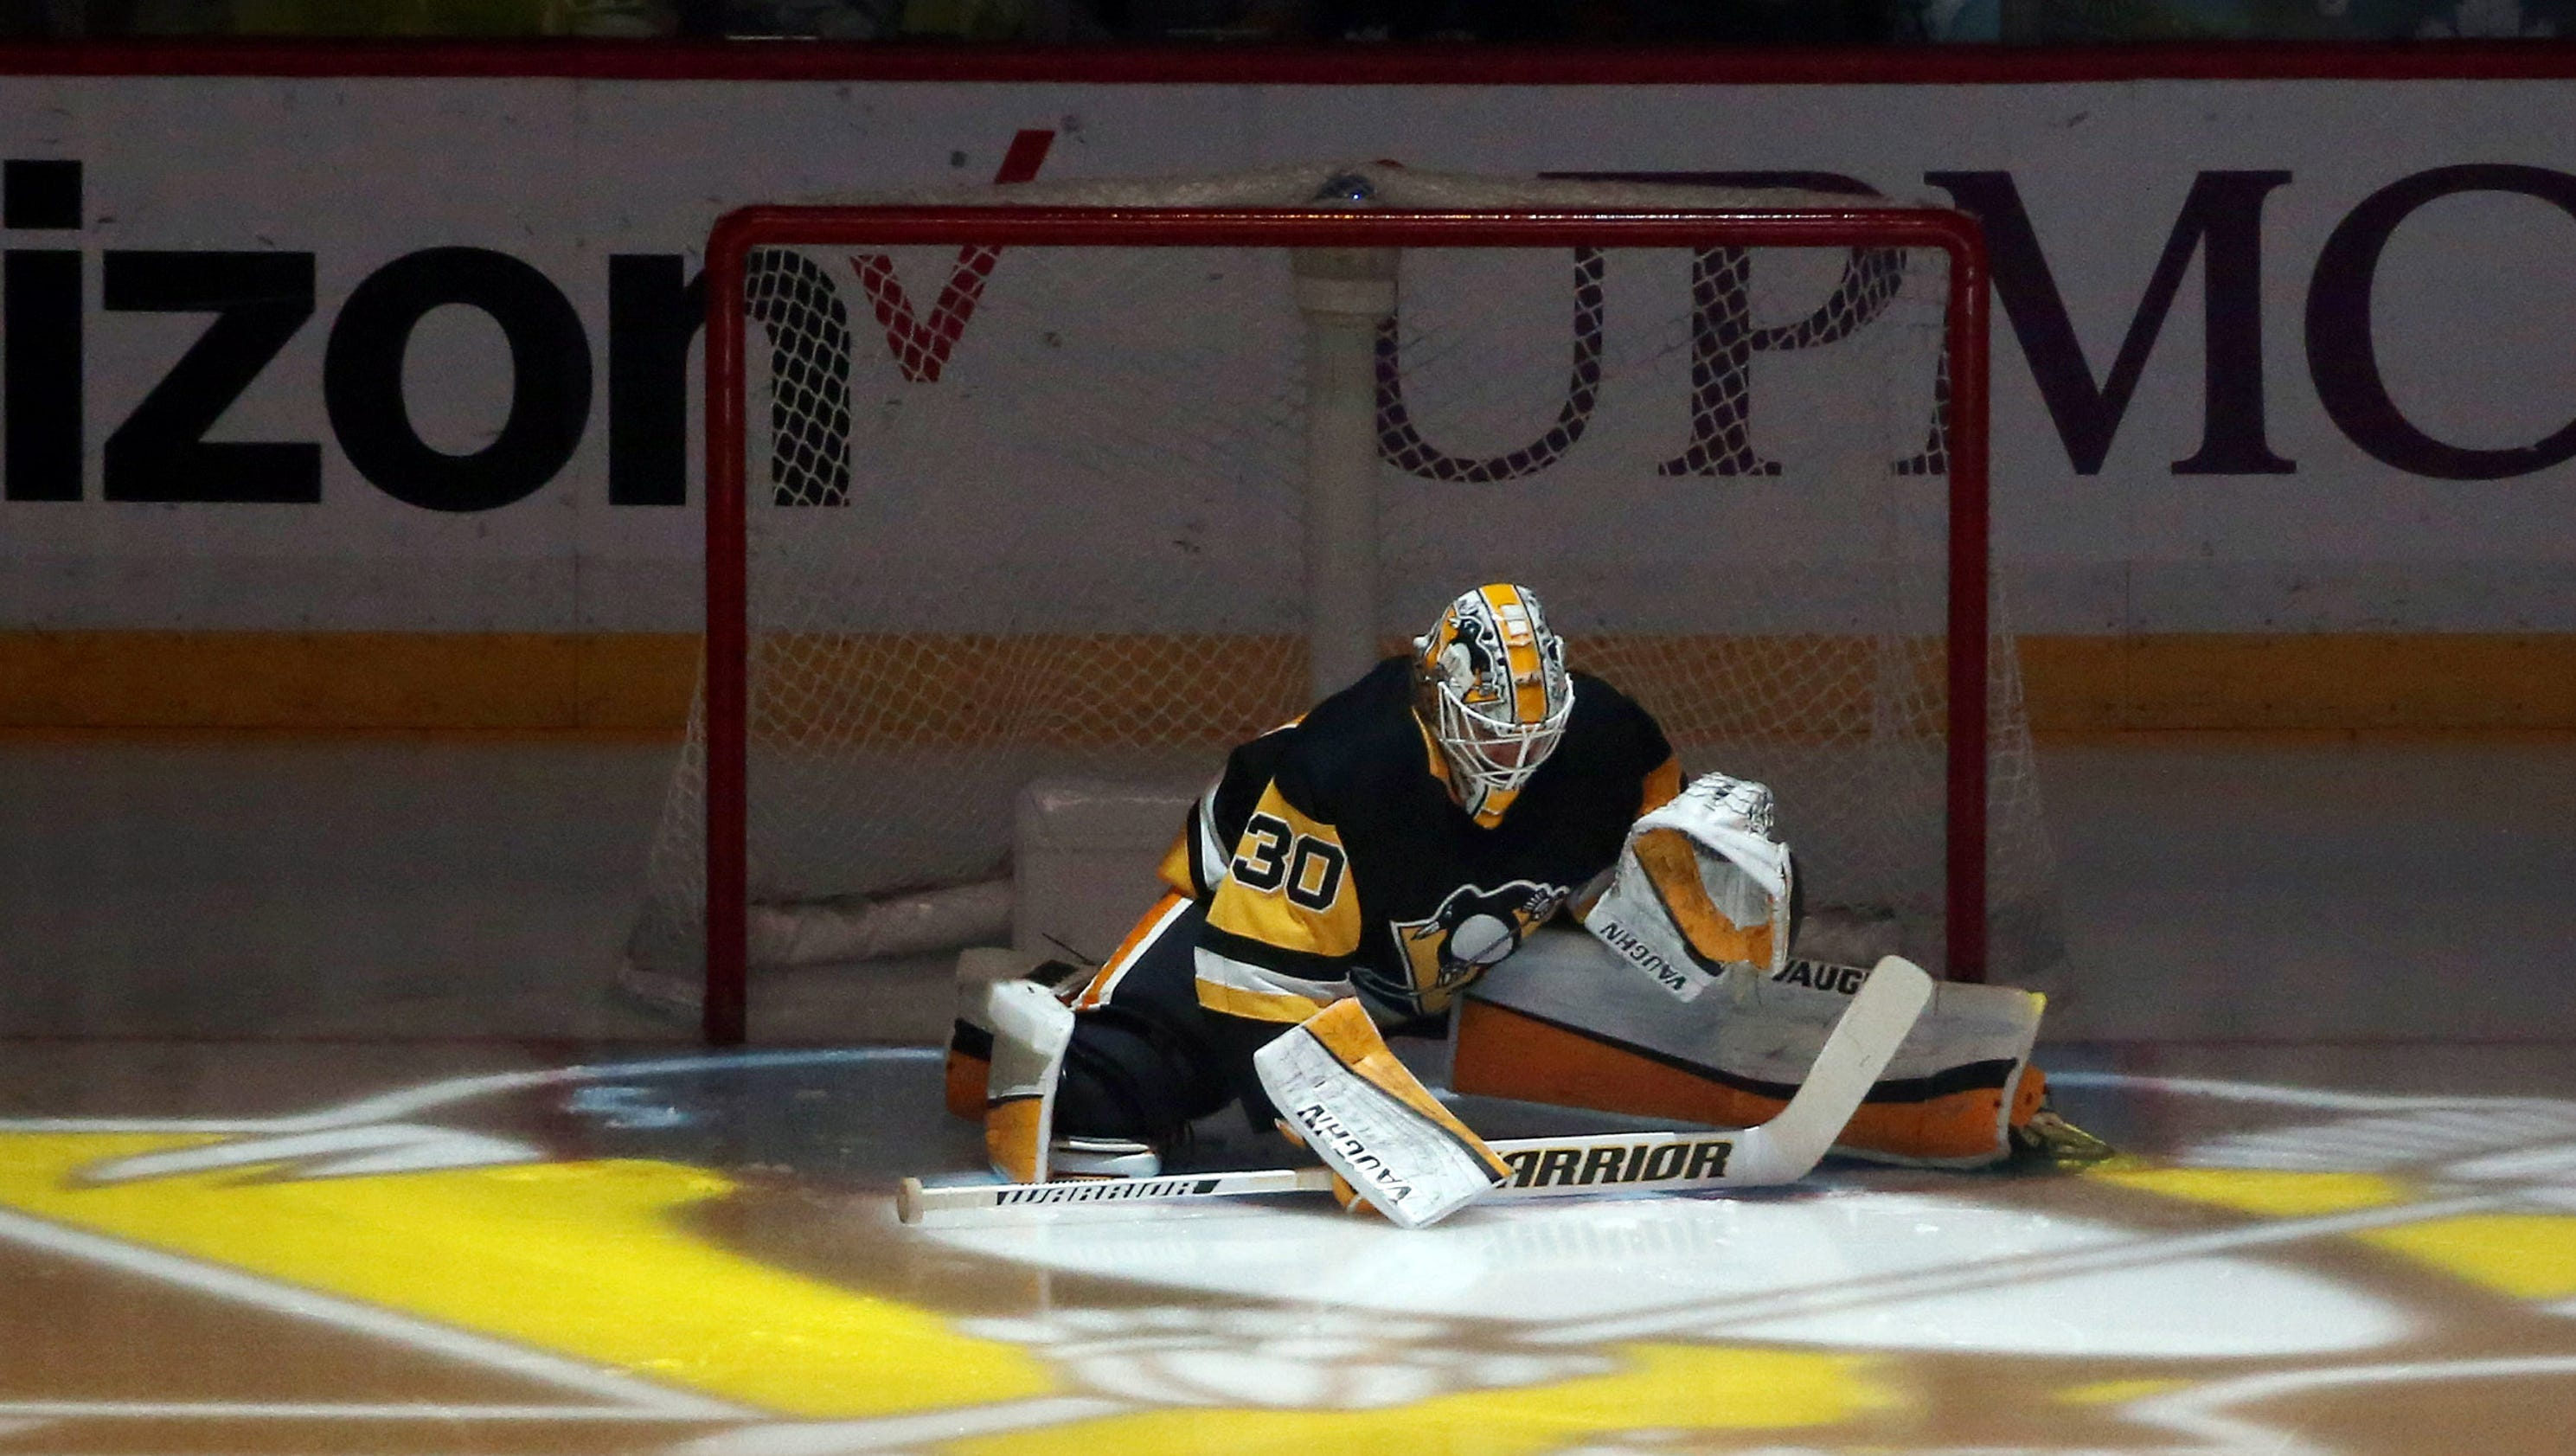 636565535031039401-usp-nhl--toronto-maple-leafs-at-pittsburgh-penguin